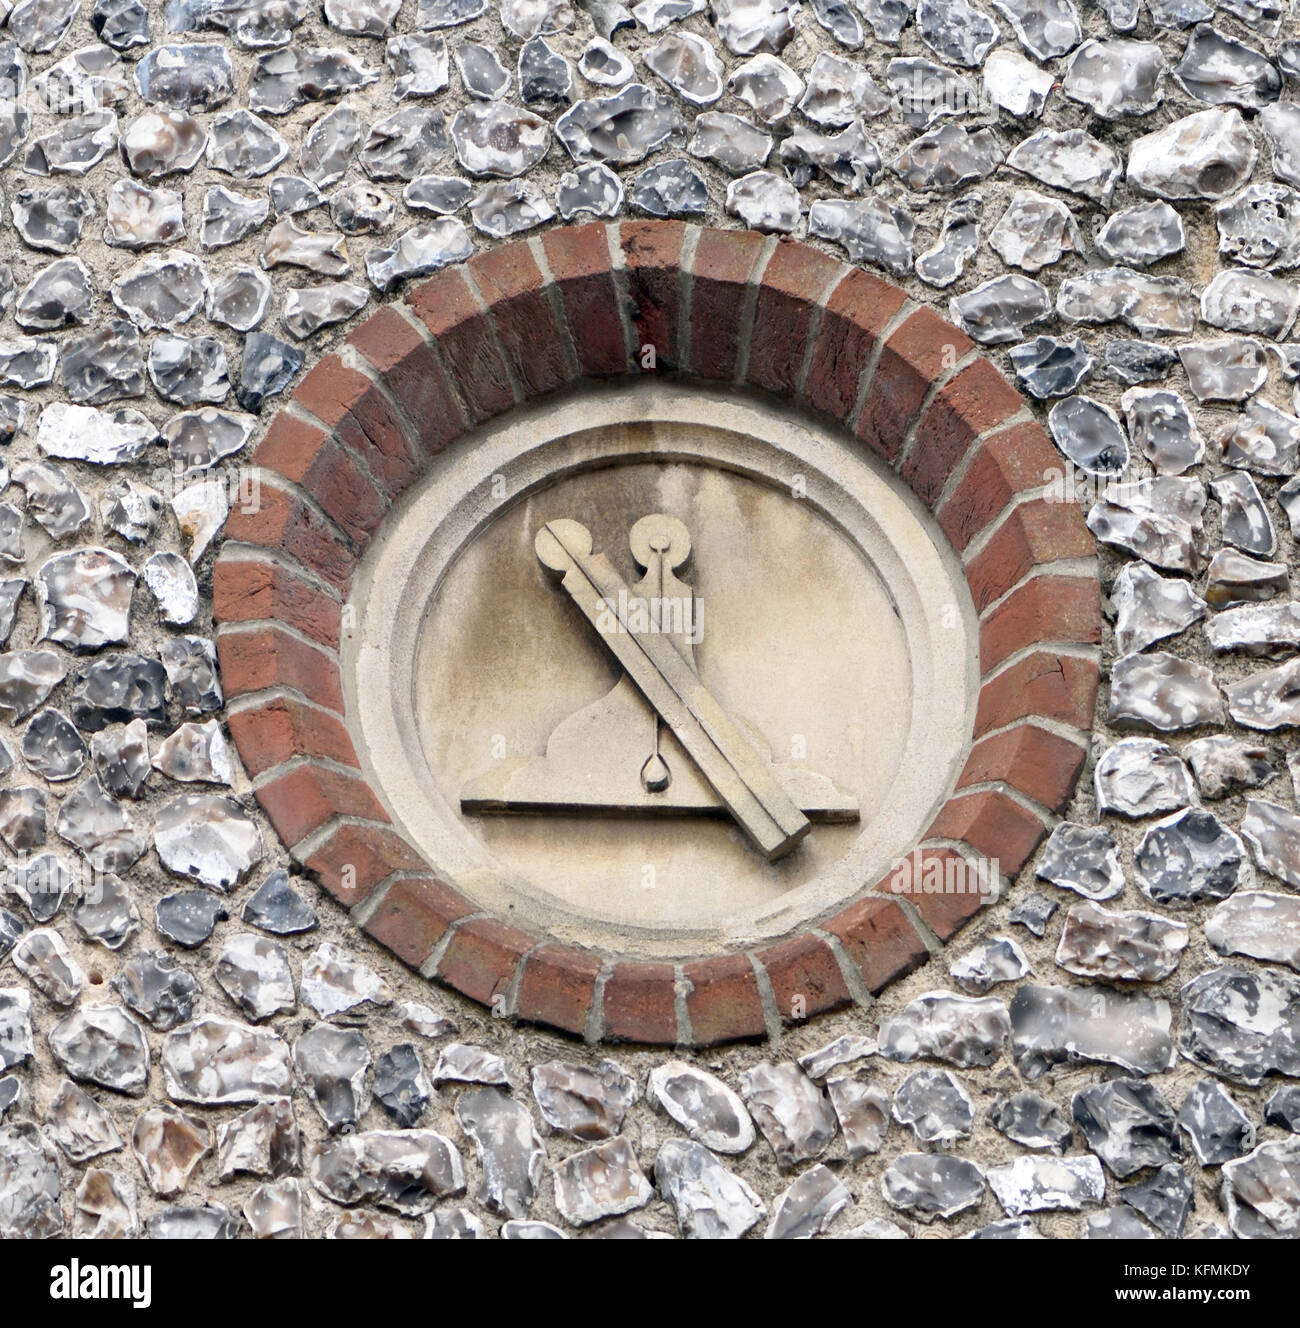 Masonic symbol stock photos masonic symbol stock images alamy a plumb rule and level masonic symbols carved on stone plagues in a flint wall biocorpaavc